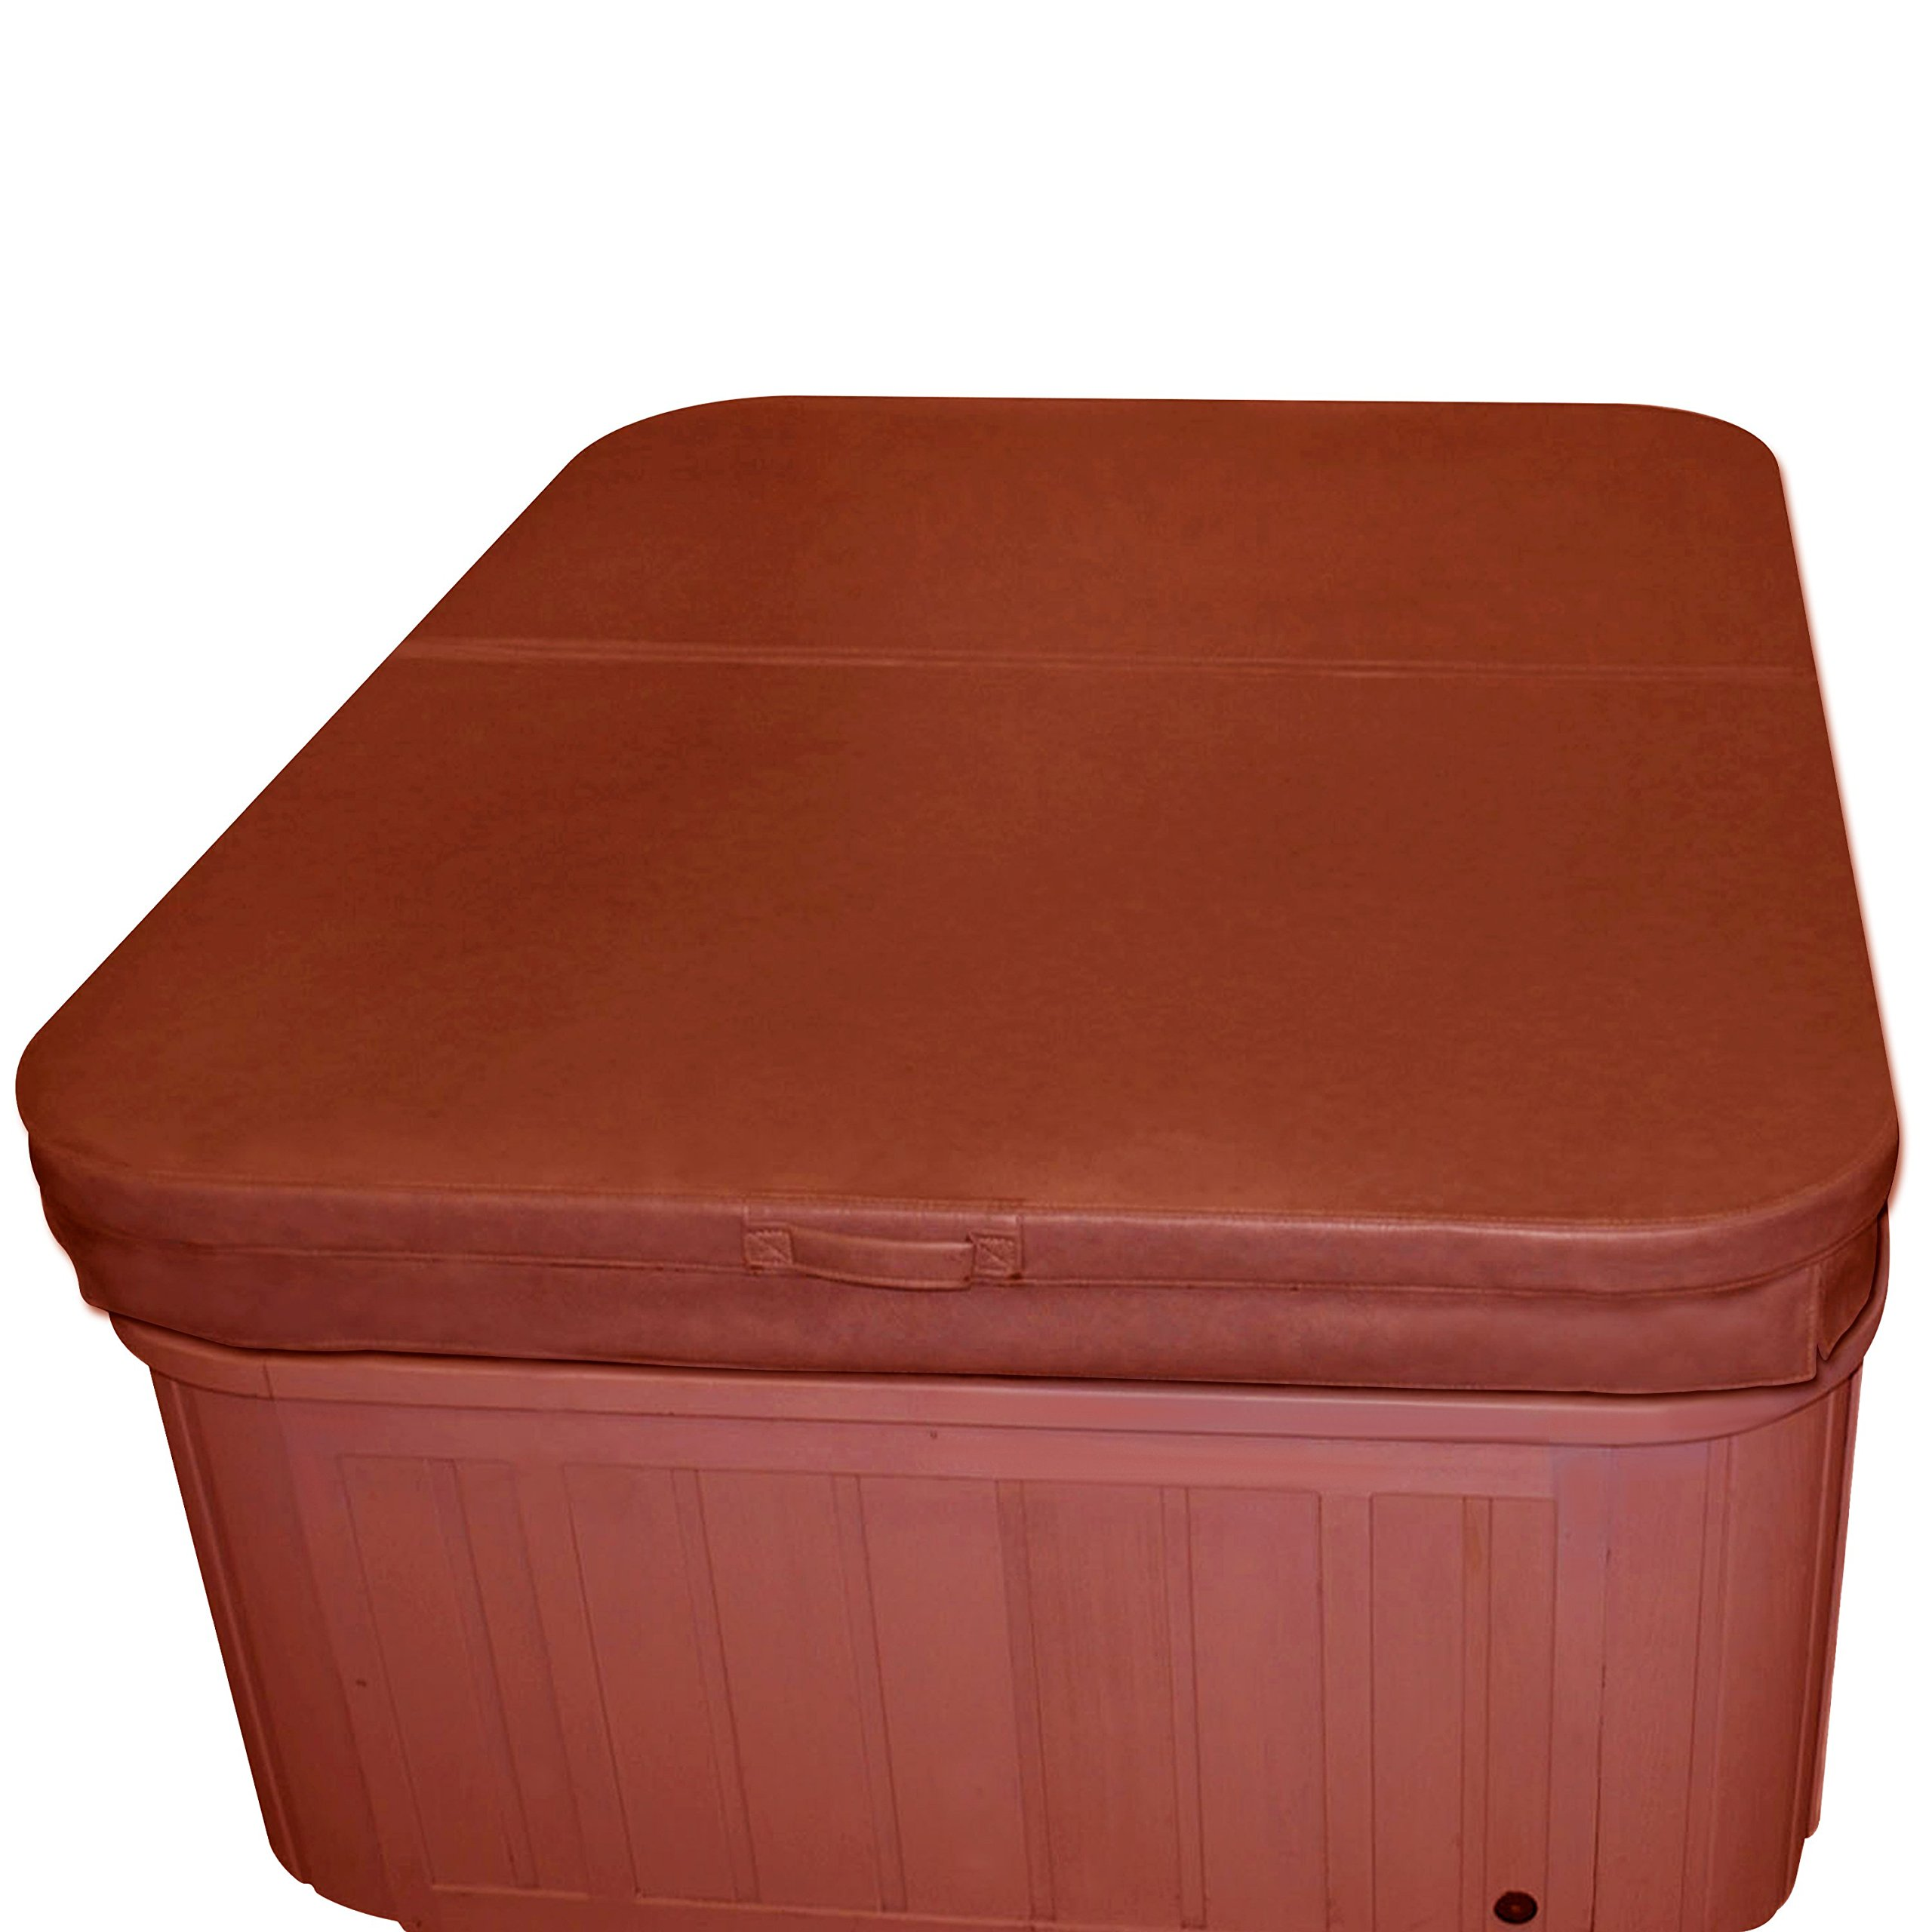 Hot Springs Tiger River Bengal Replacement Spa Cover and Hot Tub Cover - Brown by Prestige Spa Covers